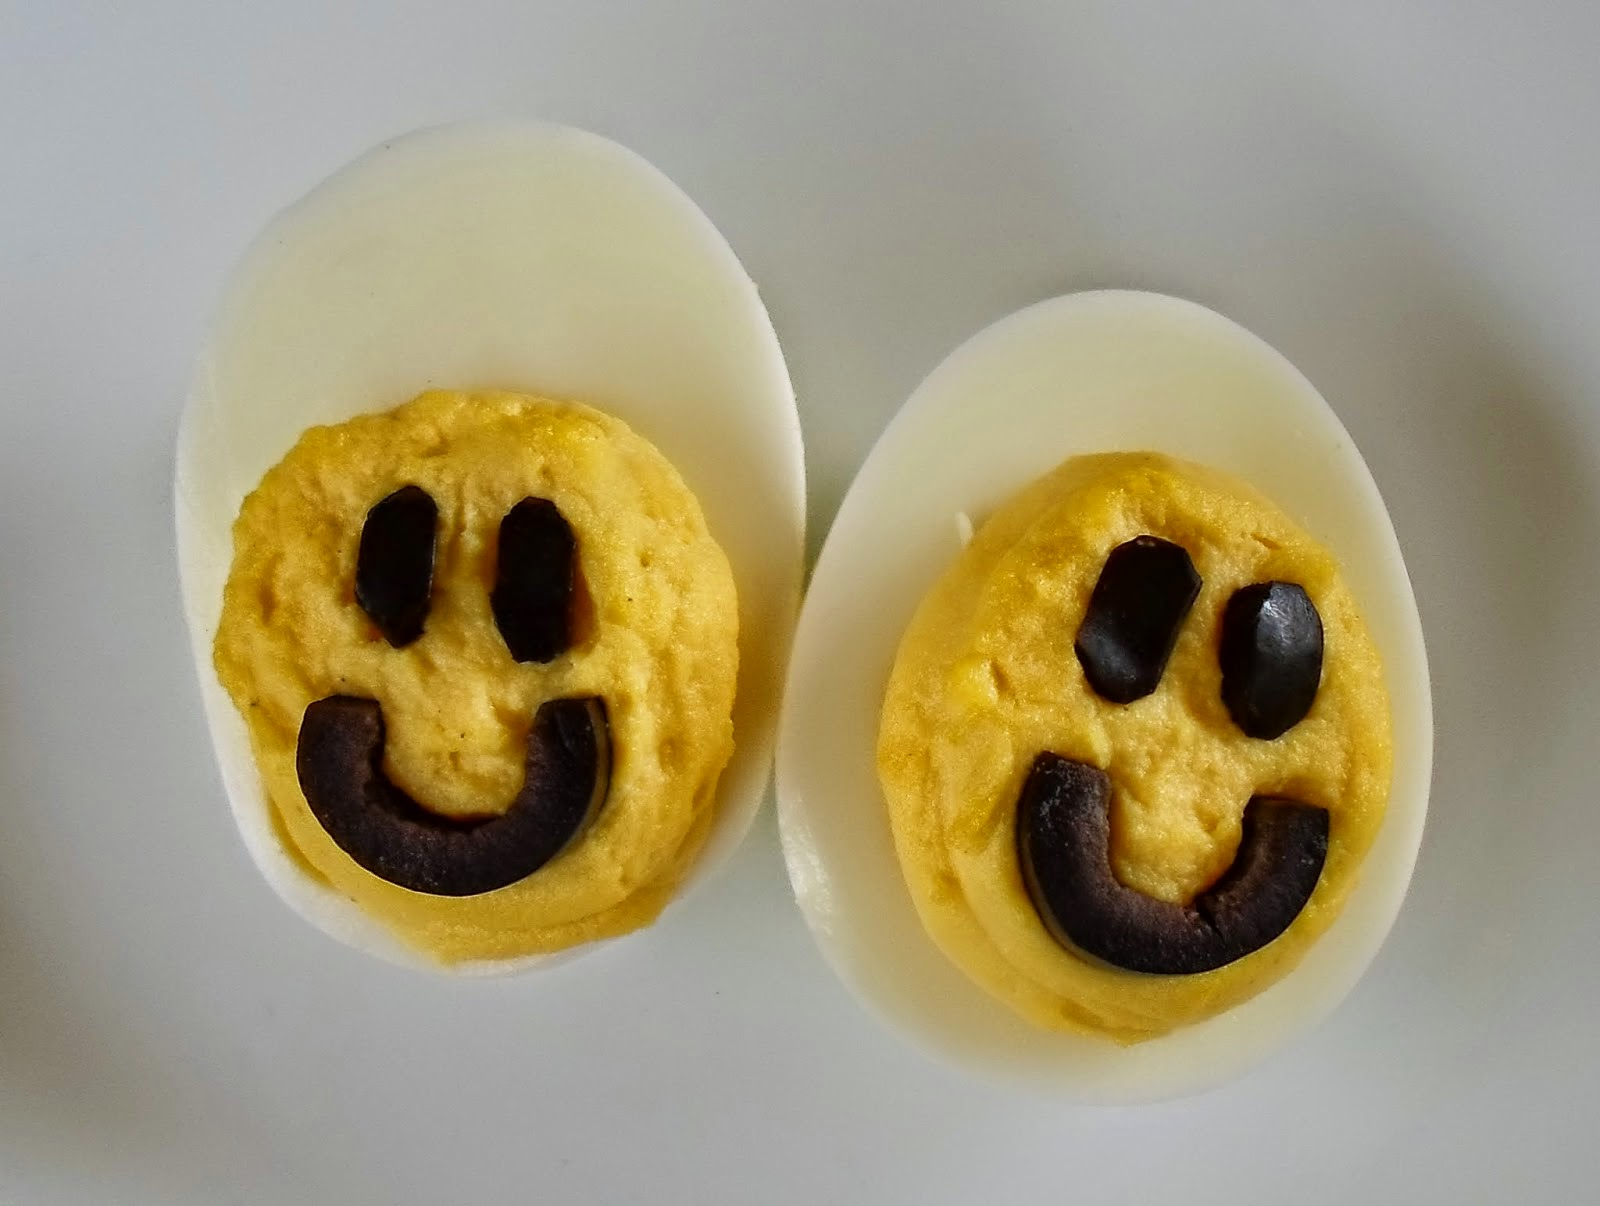 http://happierthanapiginmud.blogspot.com/2014/08/smiley-face-deviled-eggs.html